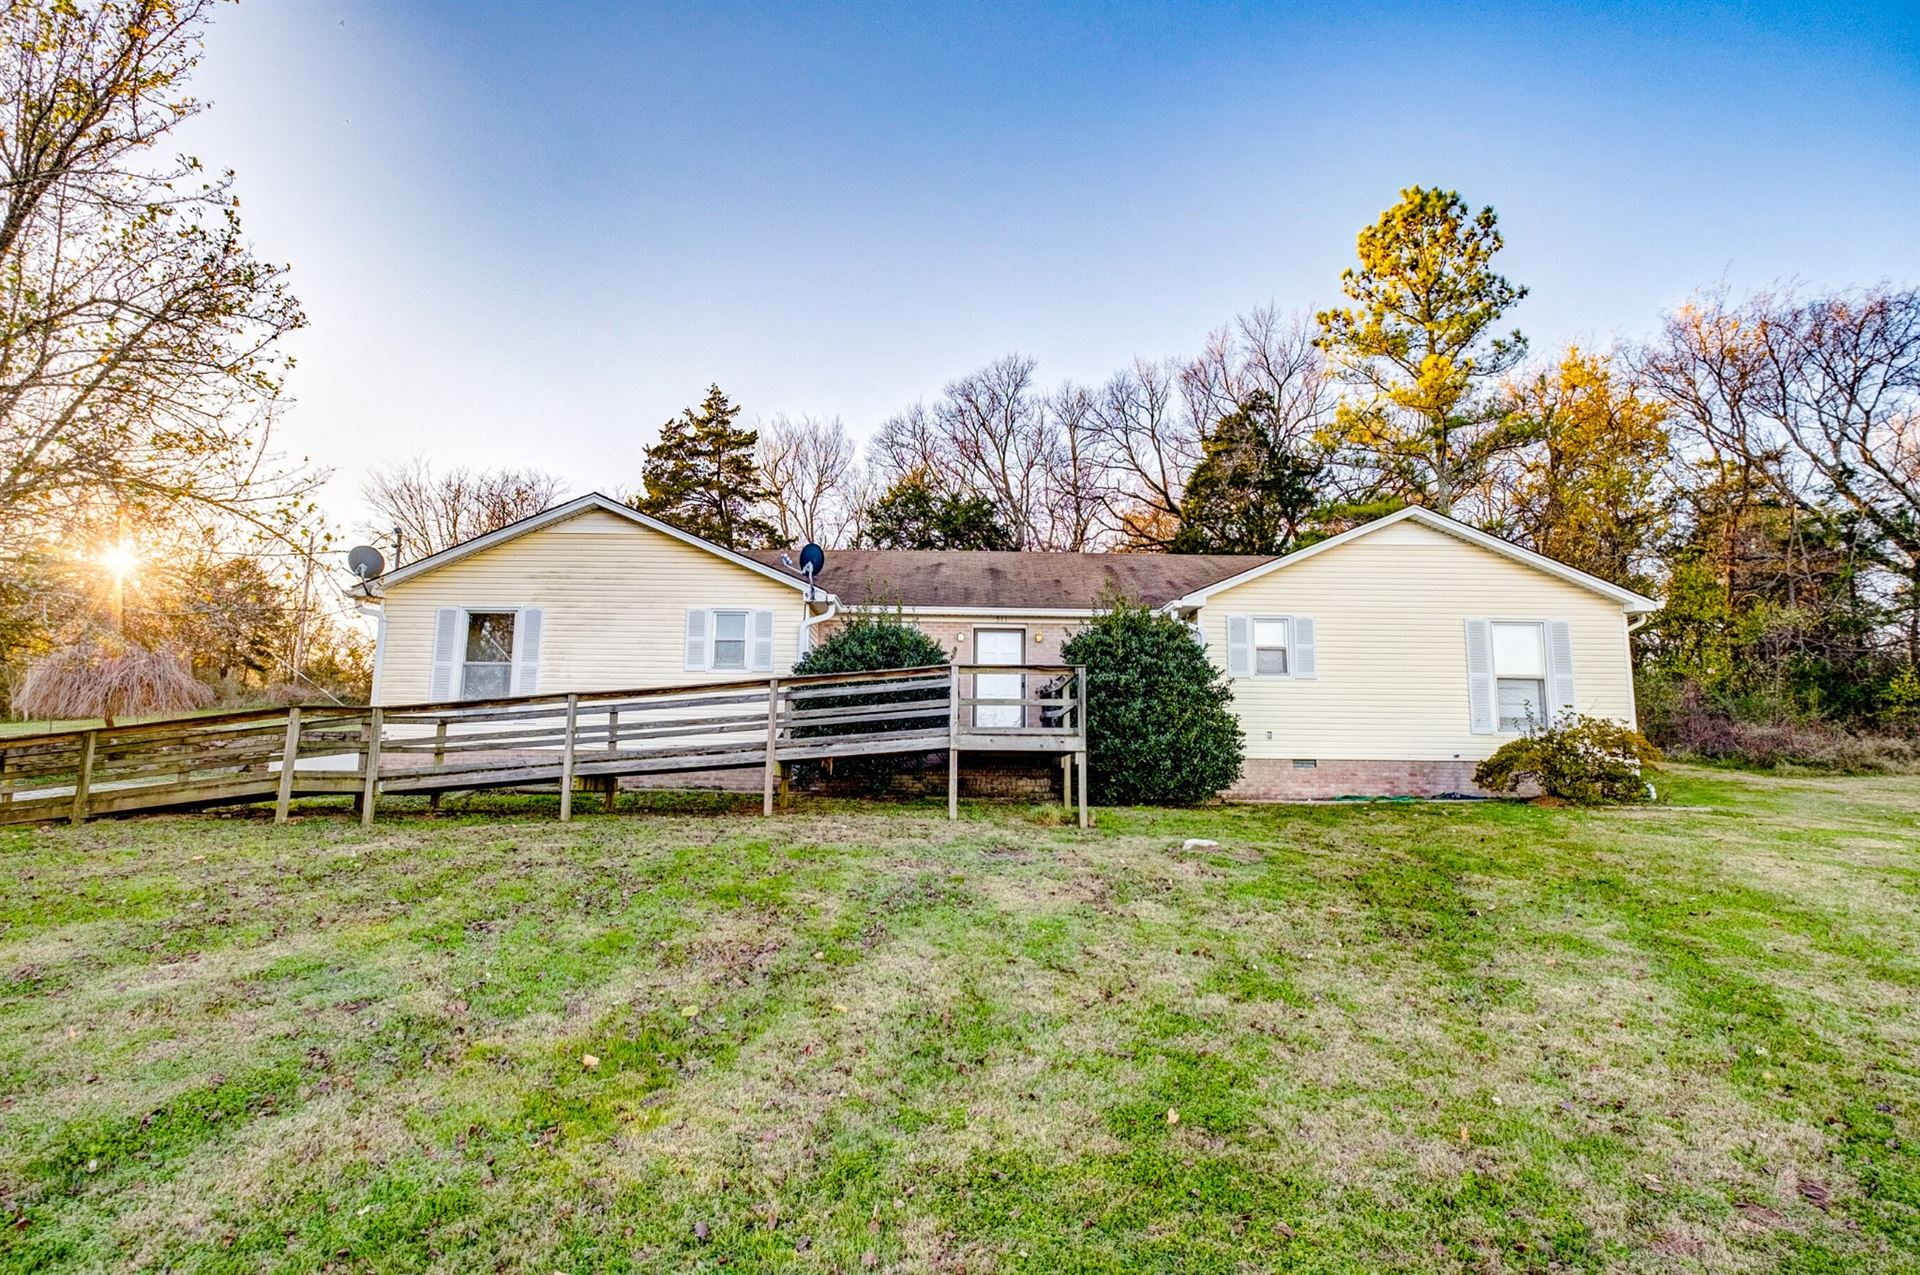 511 N Main St, Cornersville, TN 37047 - MLS#: 2208160